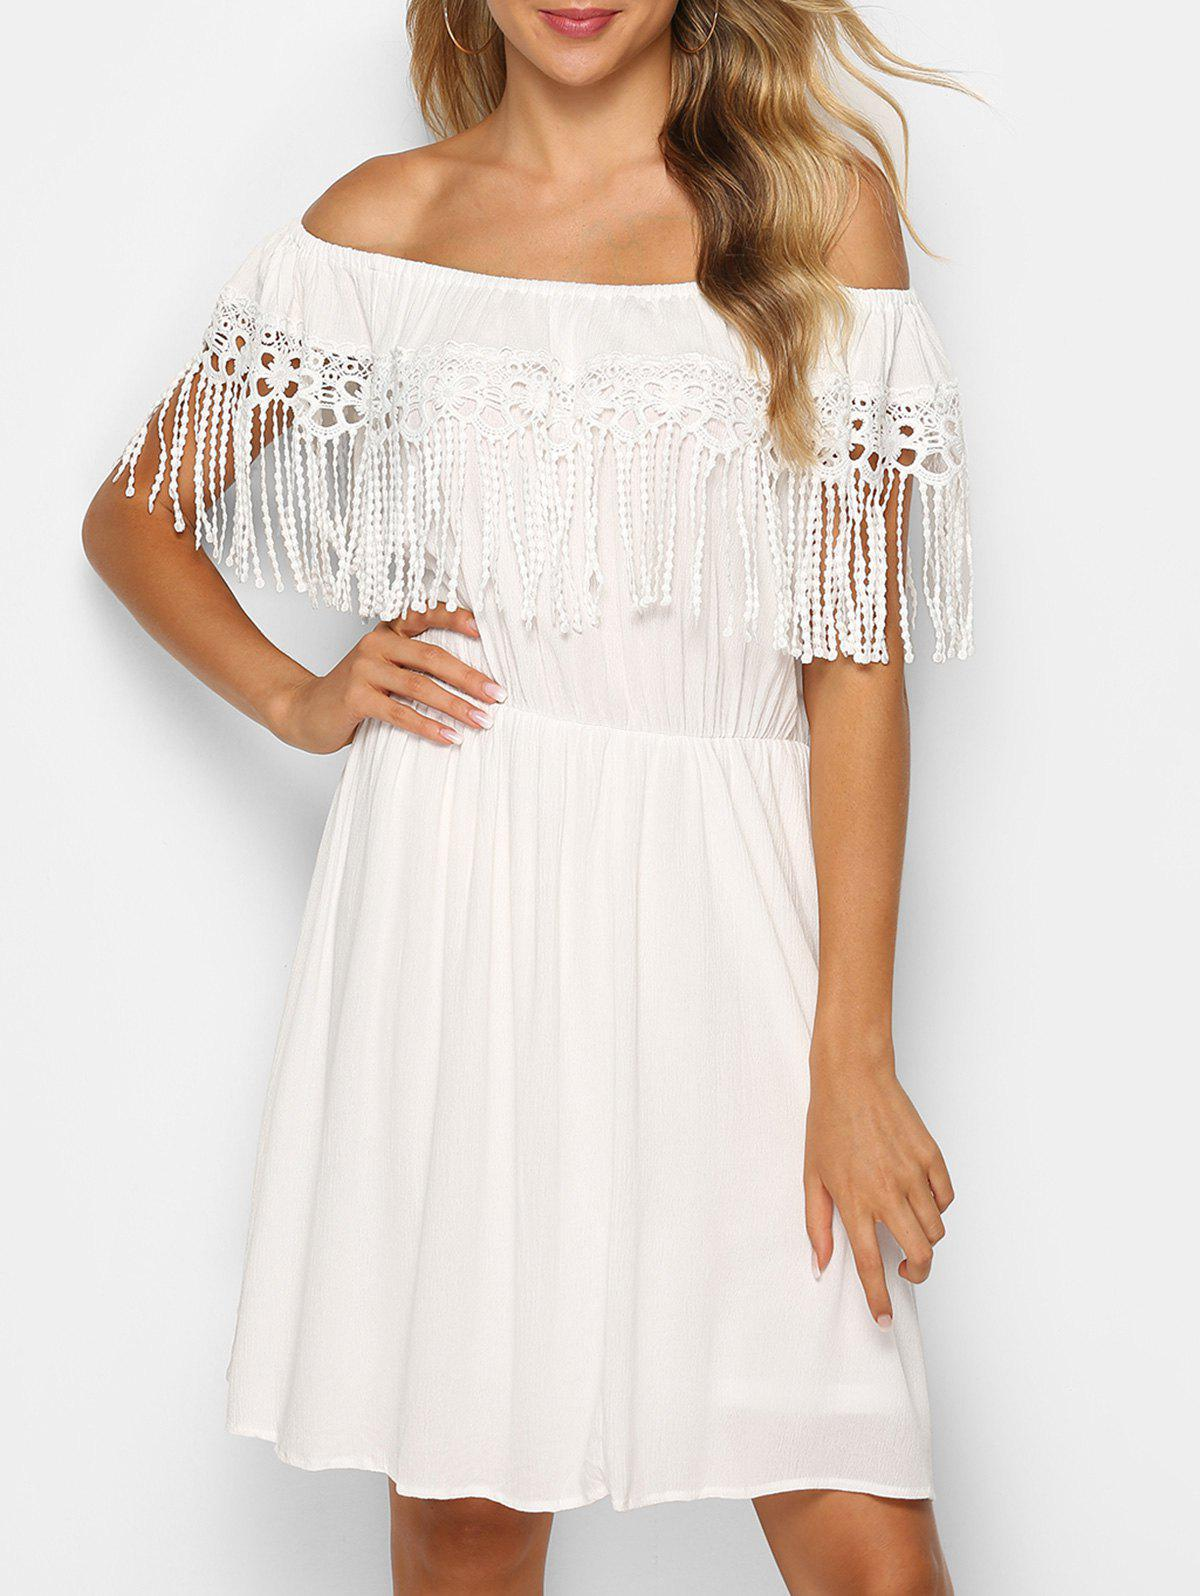 Off The Shoulder Fringed Lace Insert Dress - WHITE M